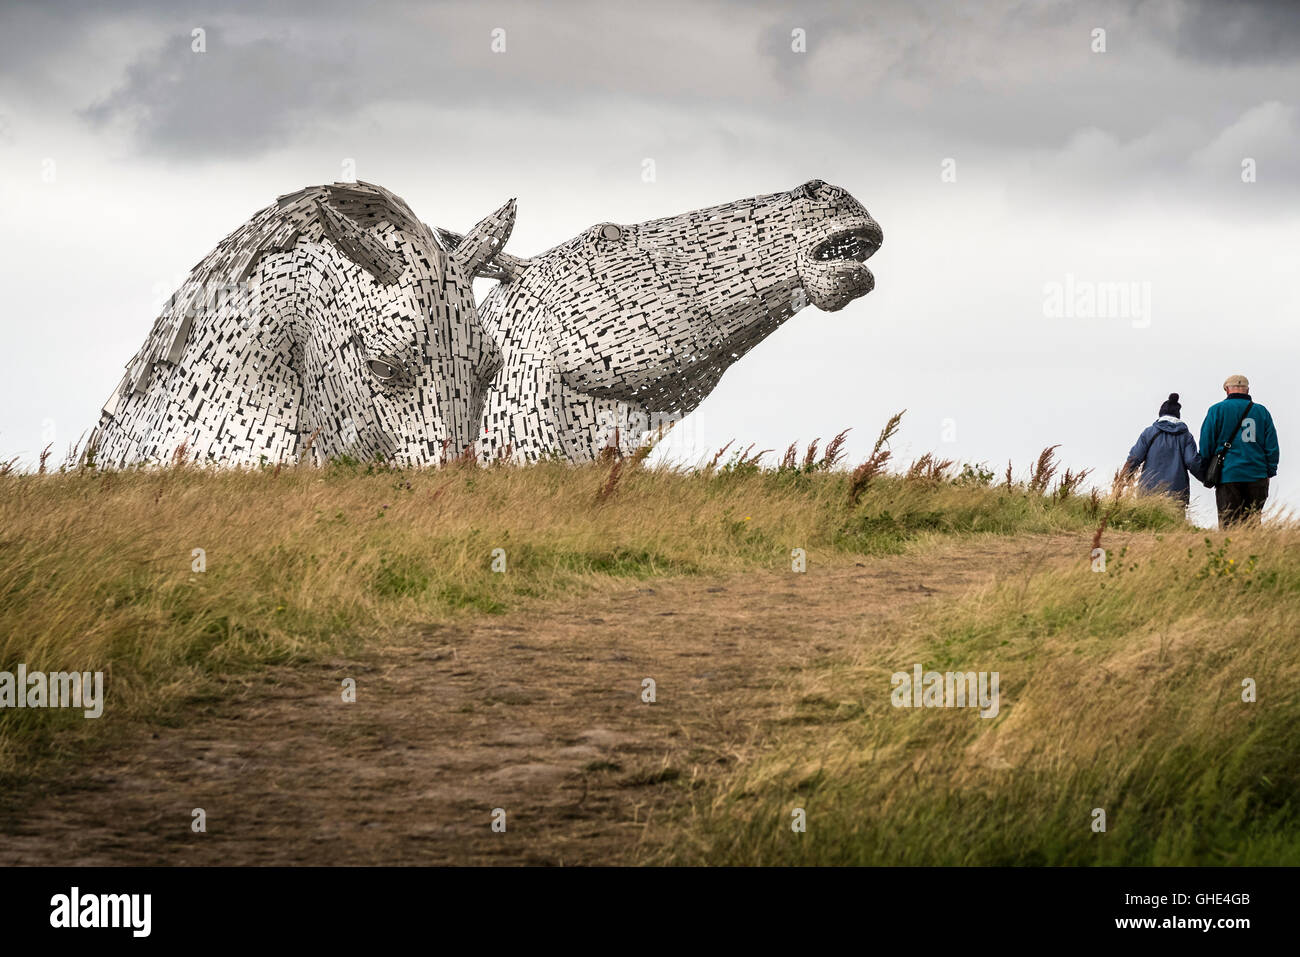 The Falkirk Kelpies. Each of The Kelpies stands up to 30 metres tall and each one weighs over 300 tonnes. - Stock Image